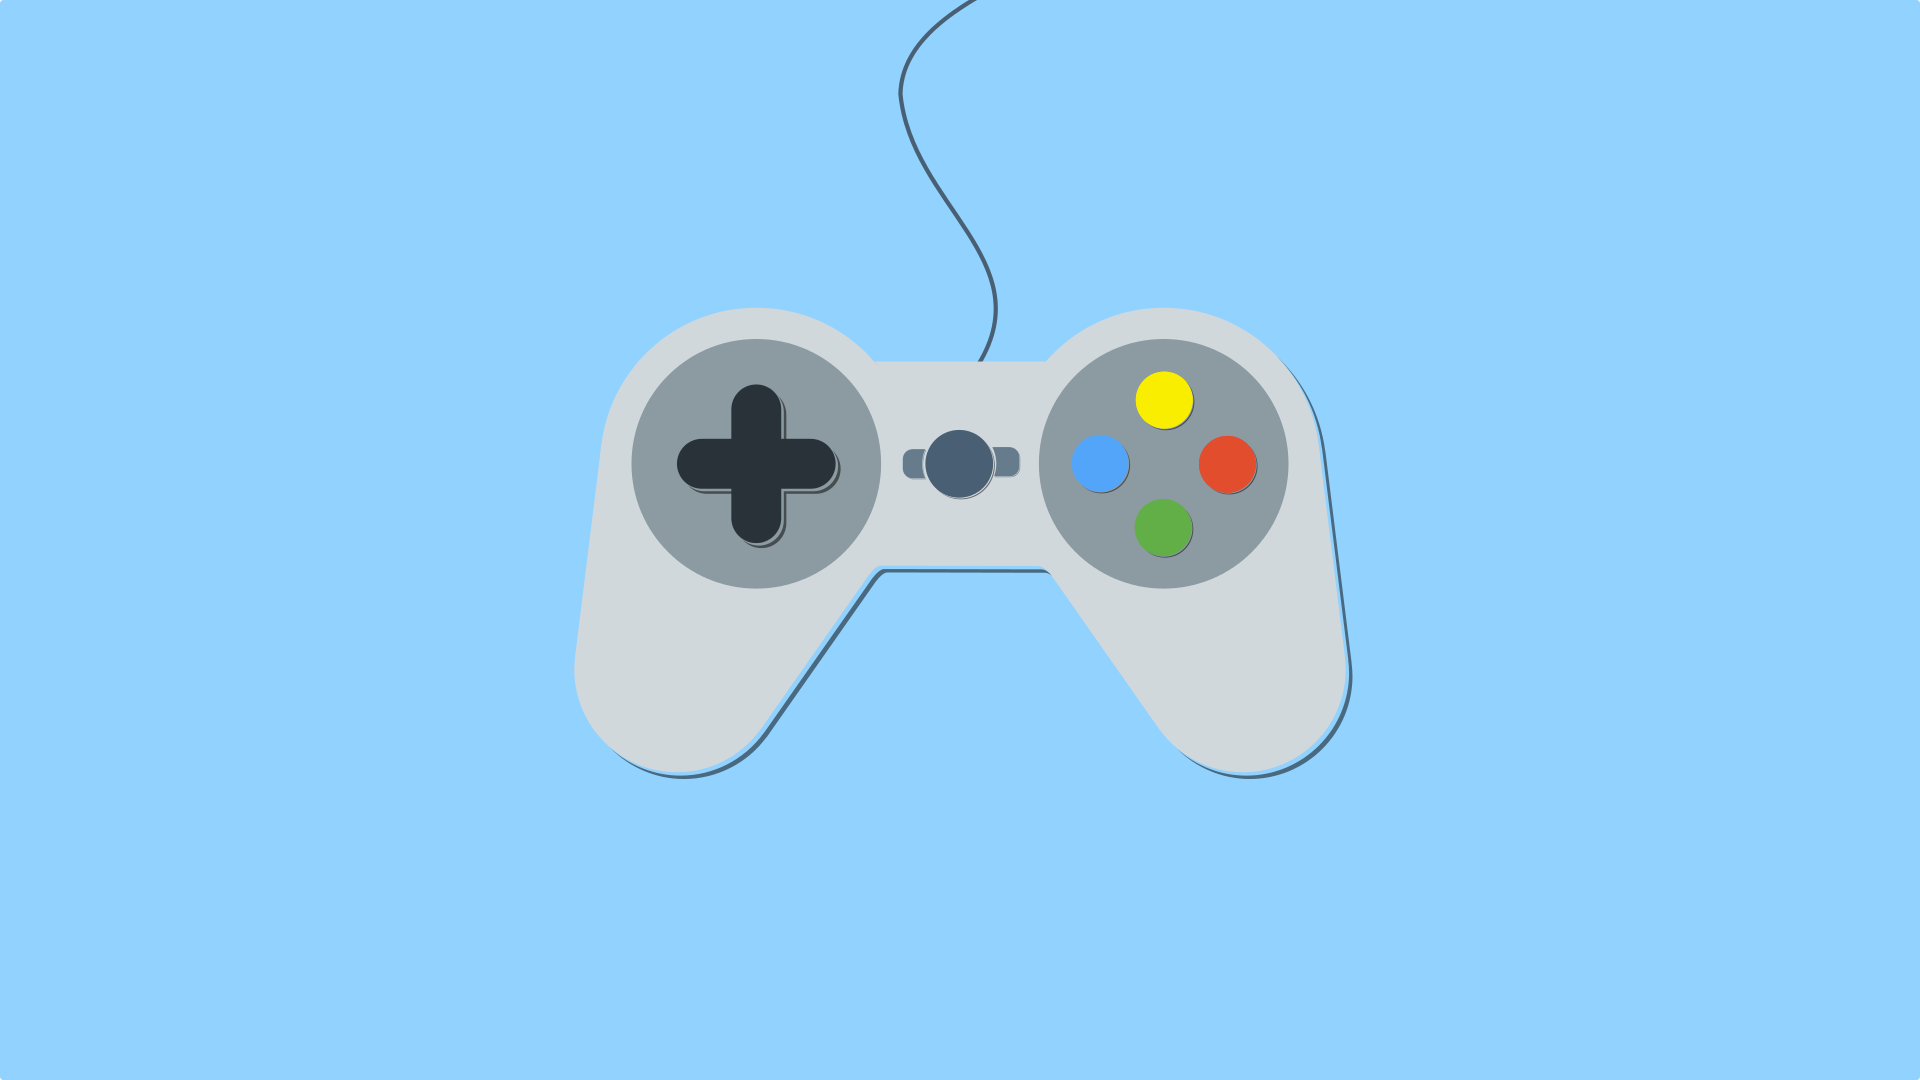 Fernbedienung, Video-Spiel, Joystick, Konsole, Retro - Wallpaper HD - Prof.-falken.com